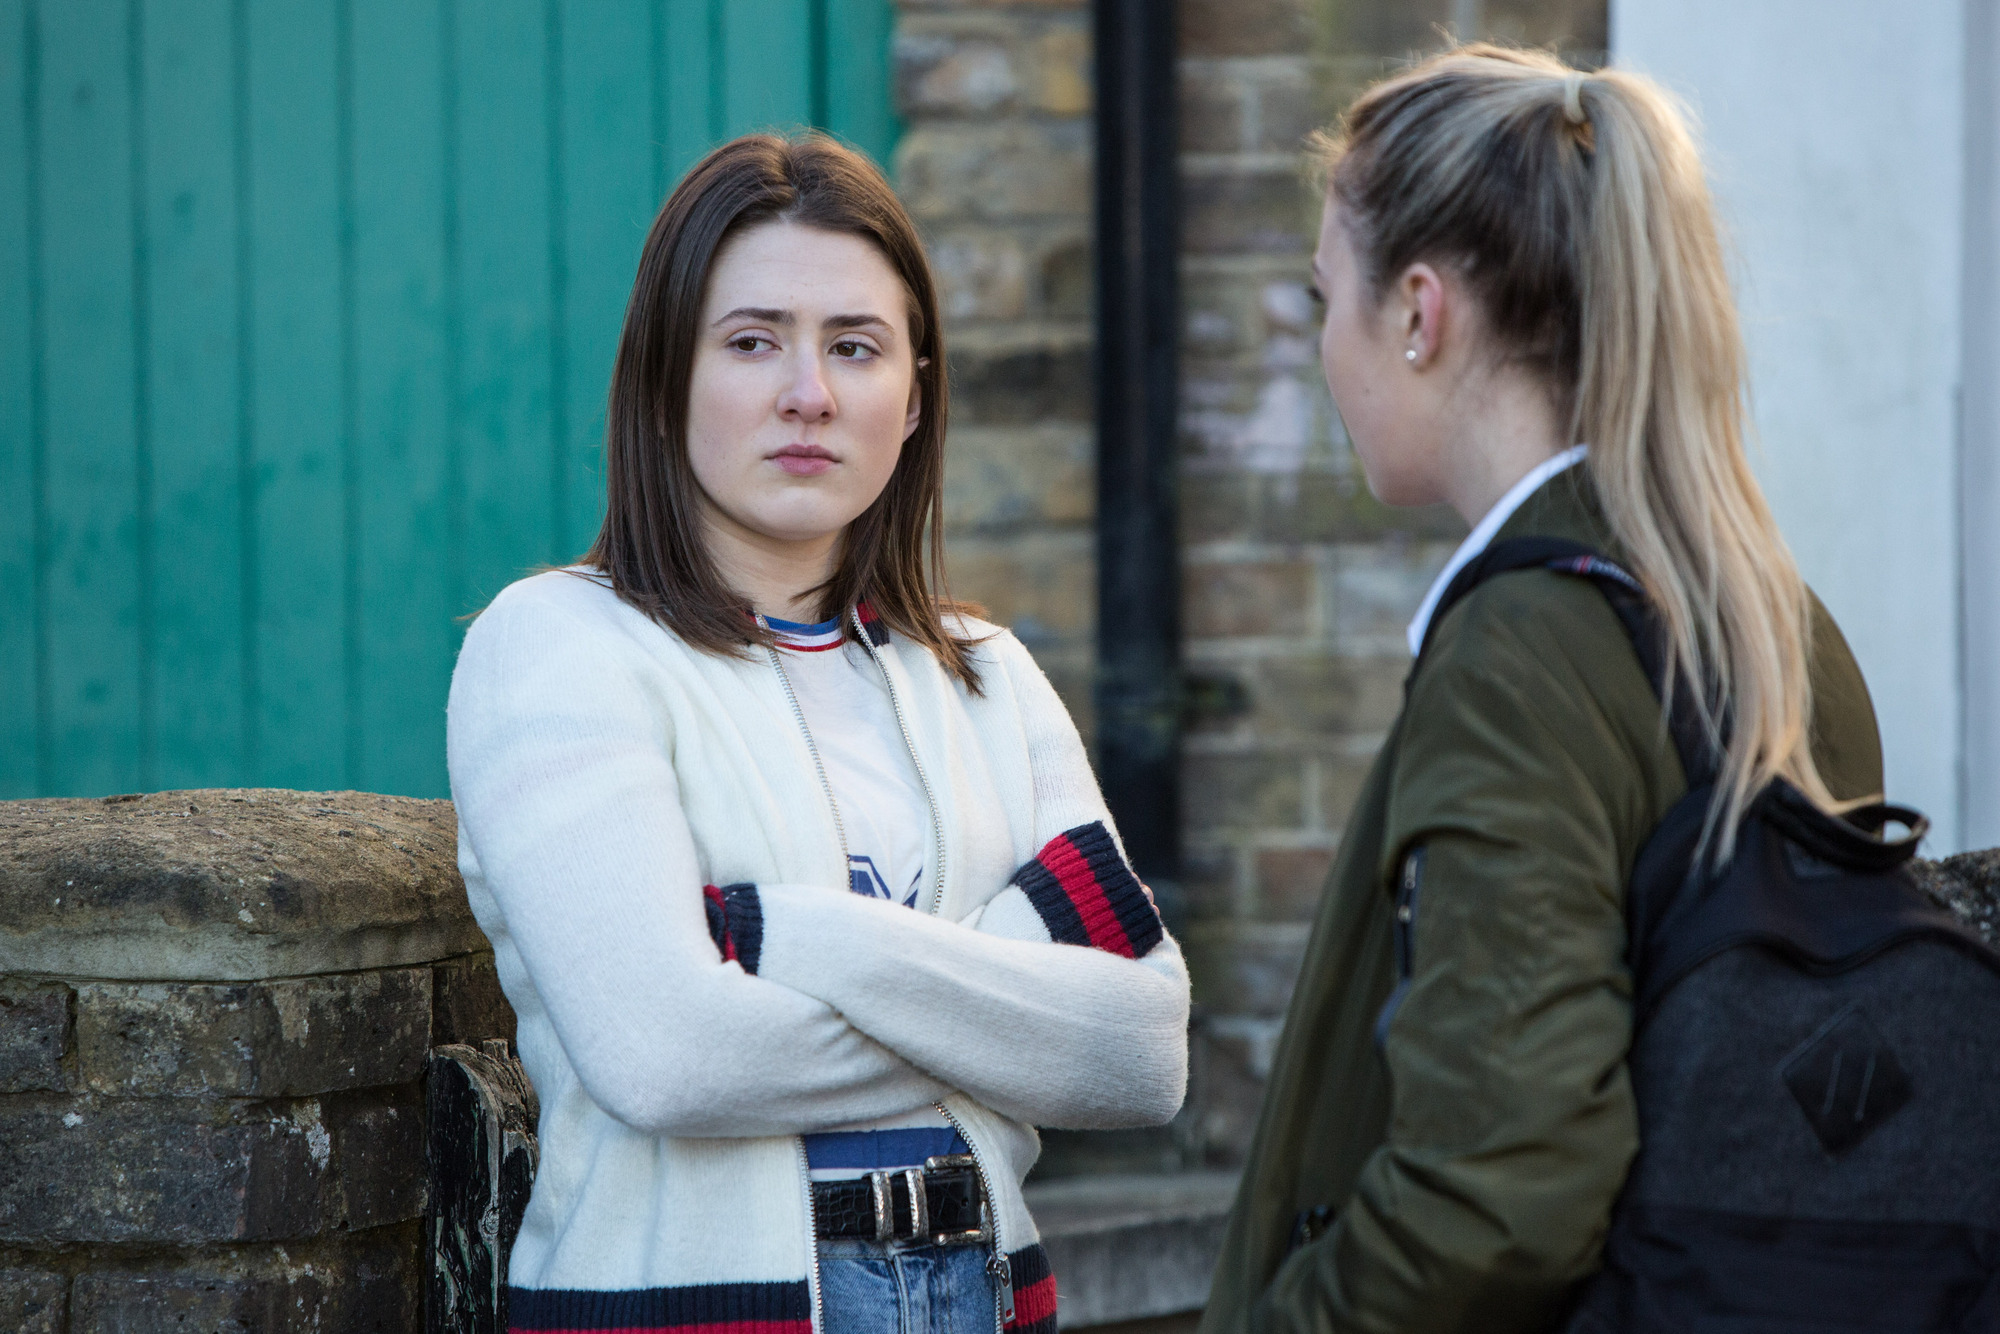 WARNING: Embargoed for publication until 00:00:01 on 28/02/2017 - Programme Name: EastEnders - January-March 2017 - TX: 09/03/2017 - Episode: EastEnders - January-March 2017 - 5455 (No. n/a) - Picture Shows: *STRICTLY NOT FOR PUBLICATION UNTIL 00:01HRS, TUESDAY 28th FEBRUARY, 2017* Bex & Louise discuss recent events. Bex Fowler (JASMINE ARMFIELD), Louise Mitchell (TILLY KEEPER) - (C) BBC - Photographer: Jack Barnes